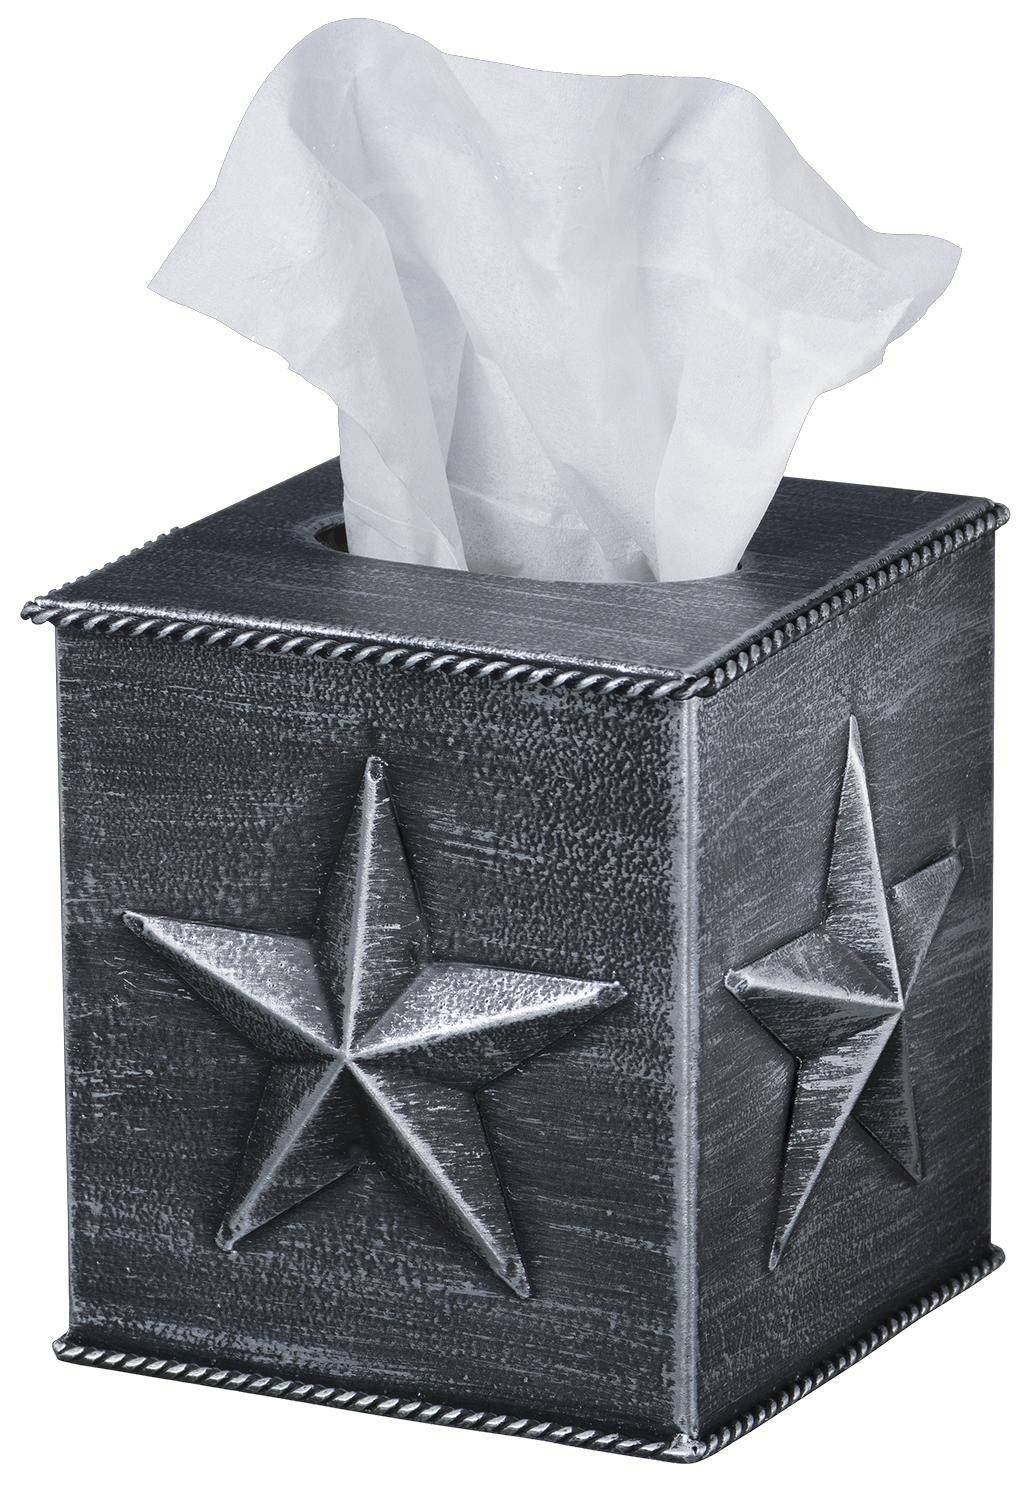 Star Square Tissue Box Cover